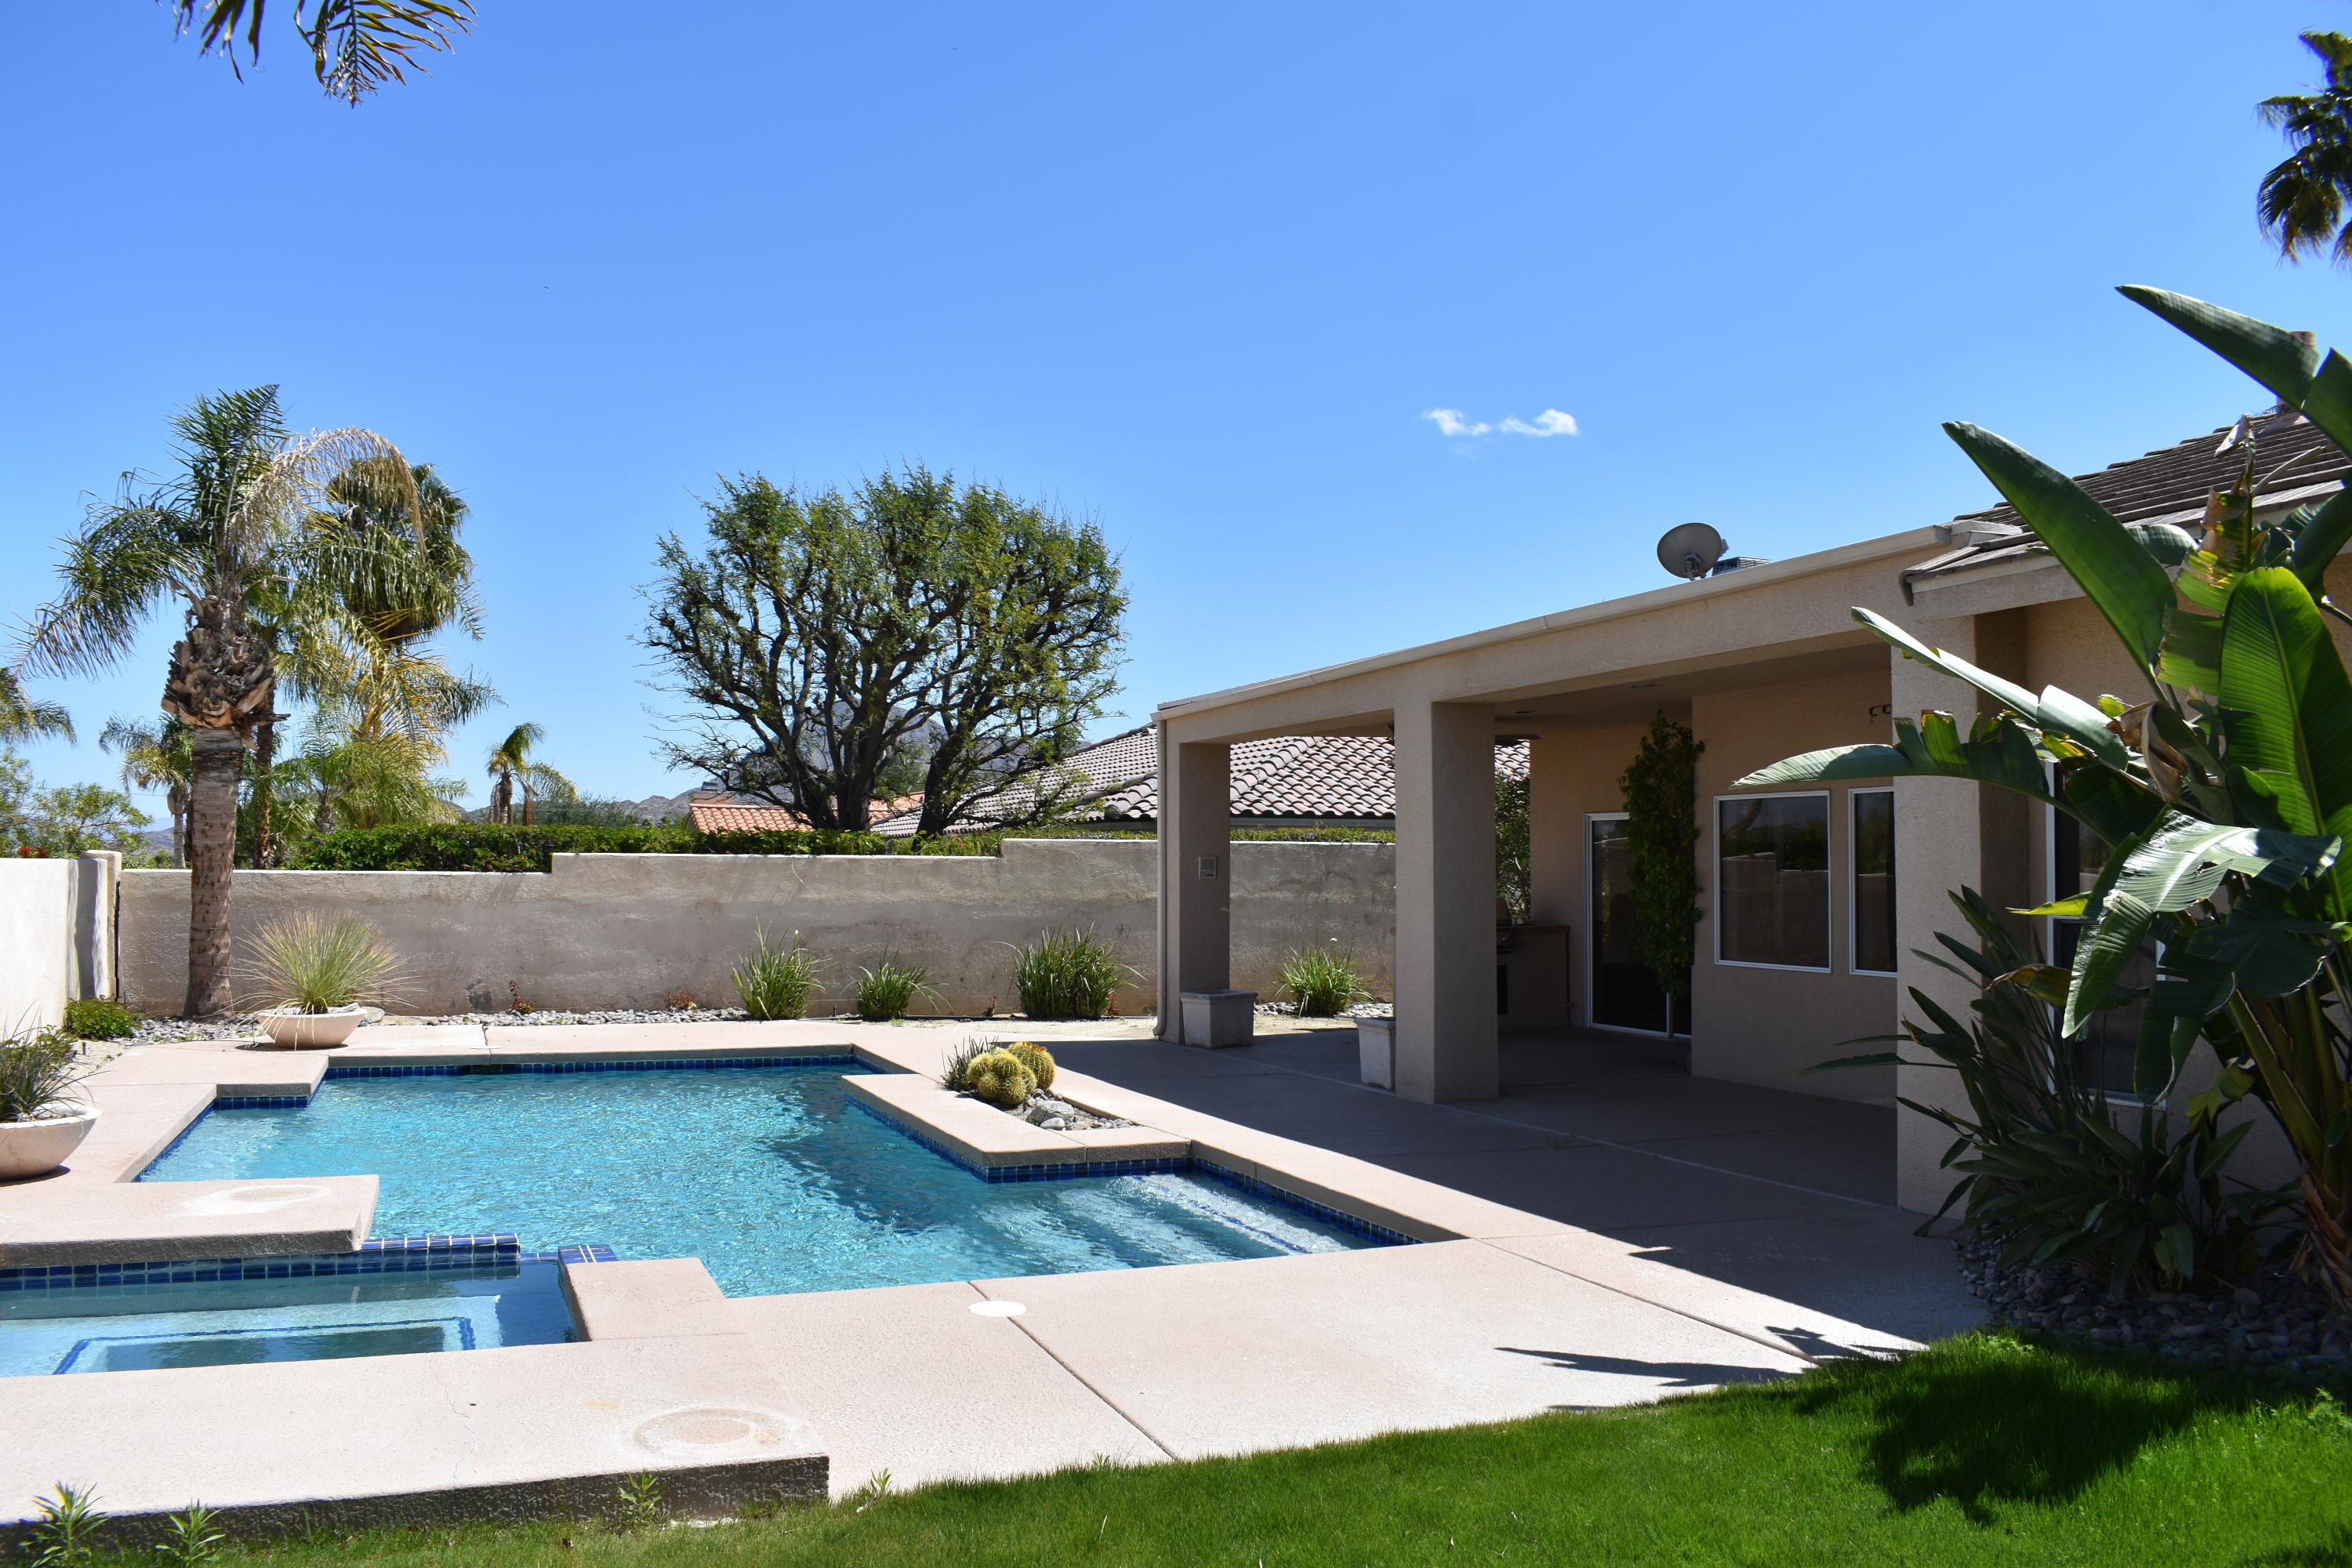 73182 Bel Air Road, Palm Desert, California 92260, 4 Bedrooms Bedrooms, ,3 BathroomsBathrooms,Residential,For Sale,73182 Bel Air Road,219041556